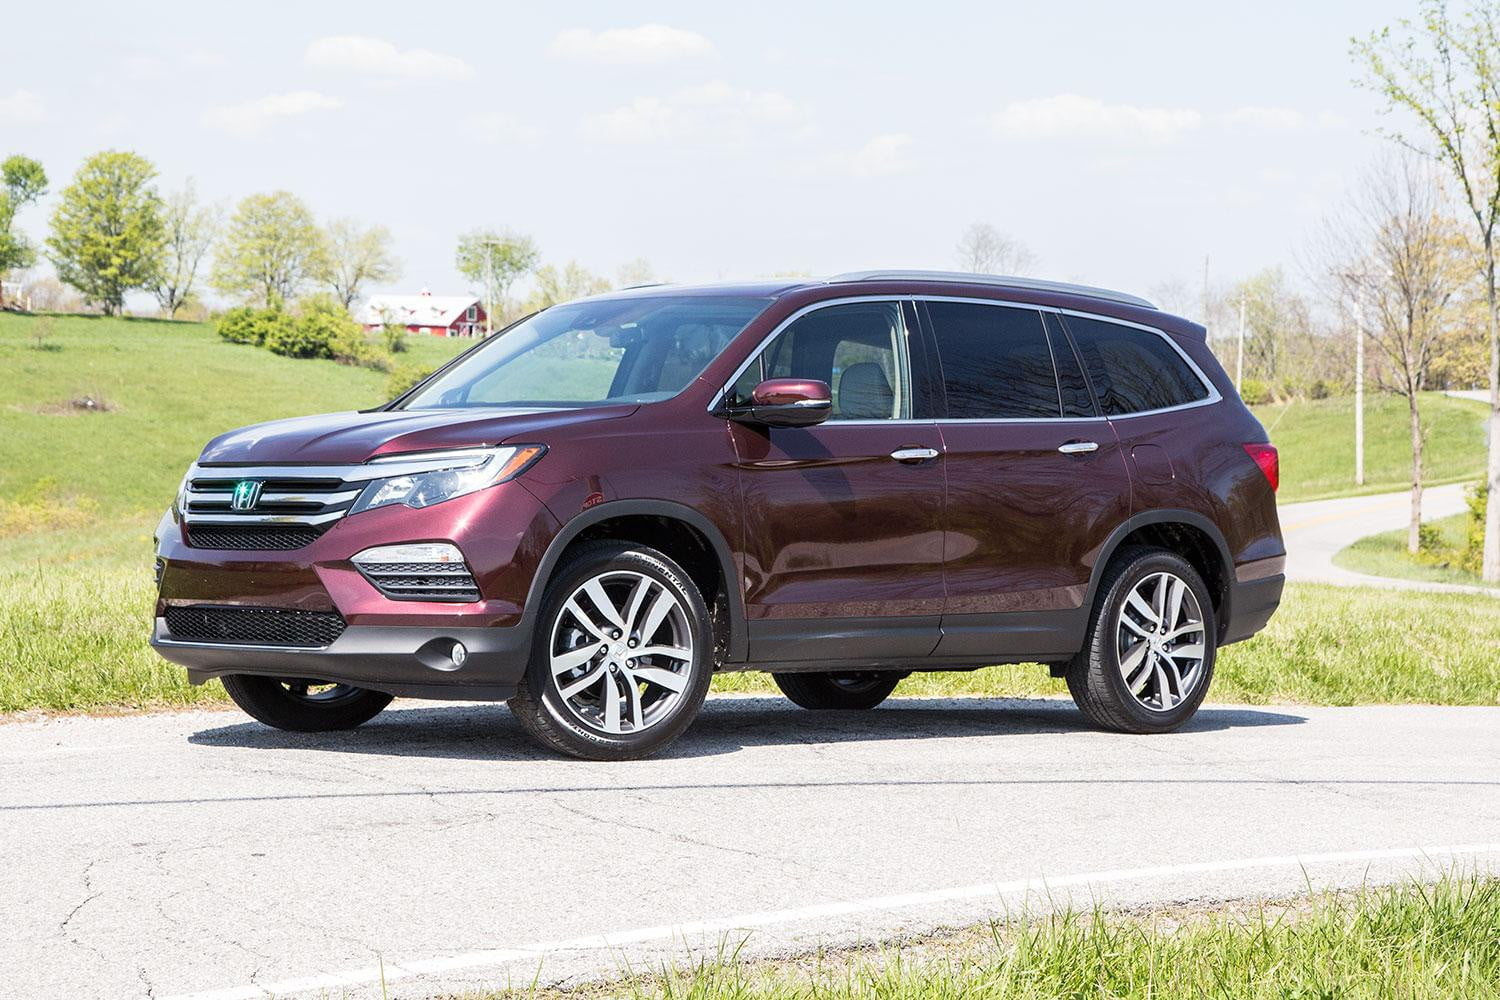 2016 honda pilot elite first drive review digital trends. Black Bedroom Furniture Sets. Home Design Ideas